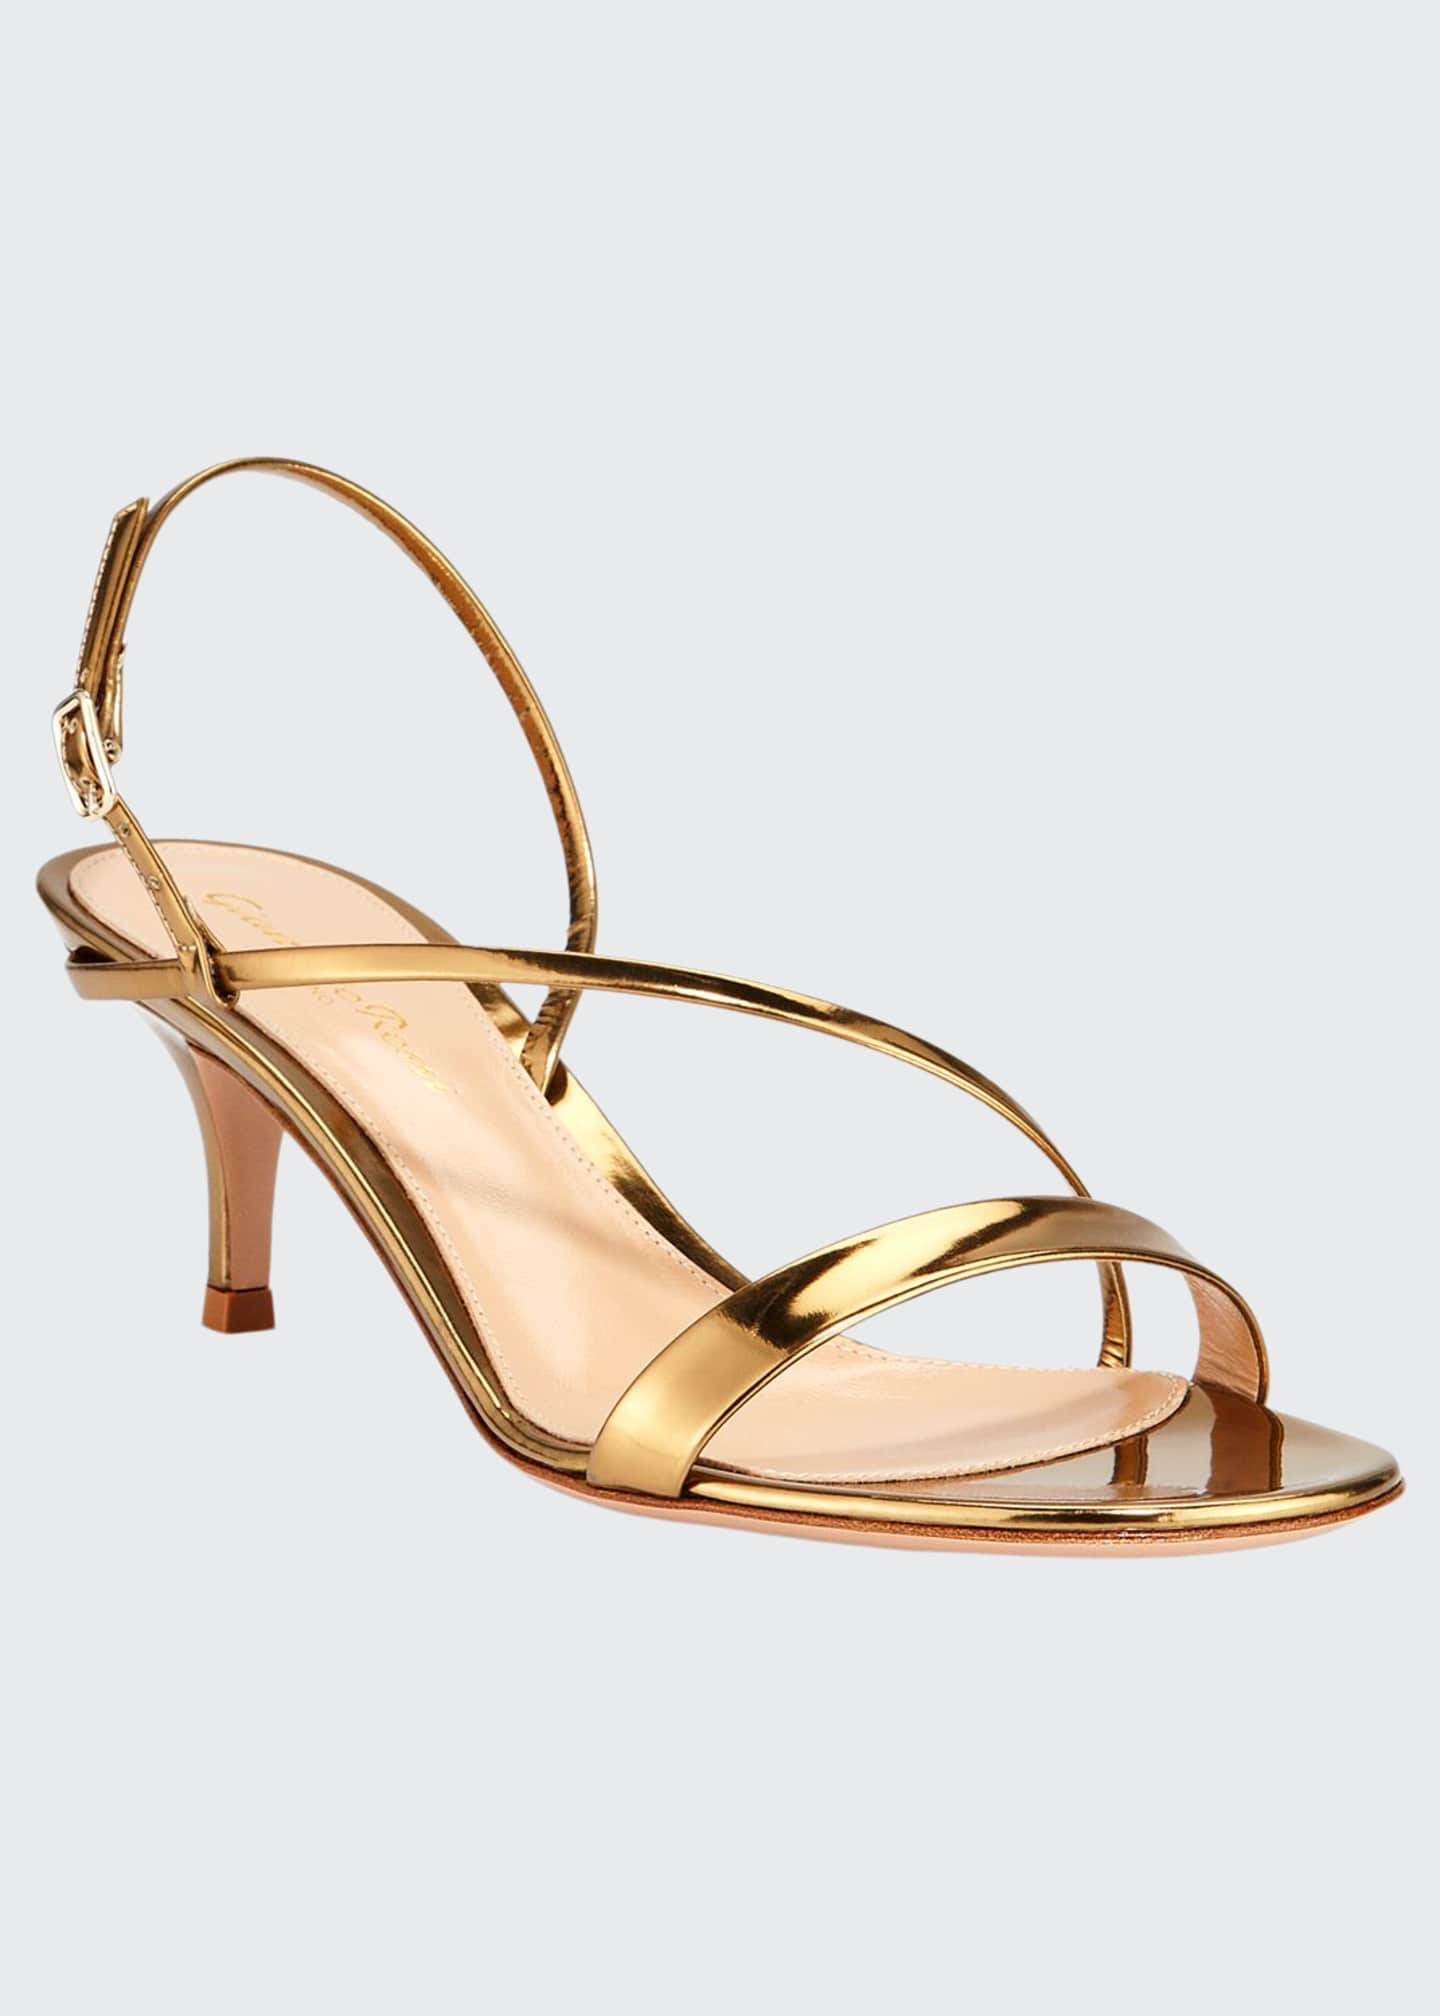 Gianvito Rossi Strappy Low-Heel Metallic Leather Sandals